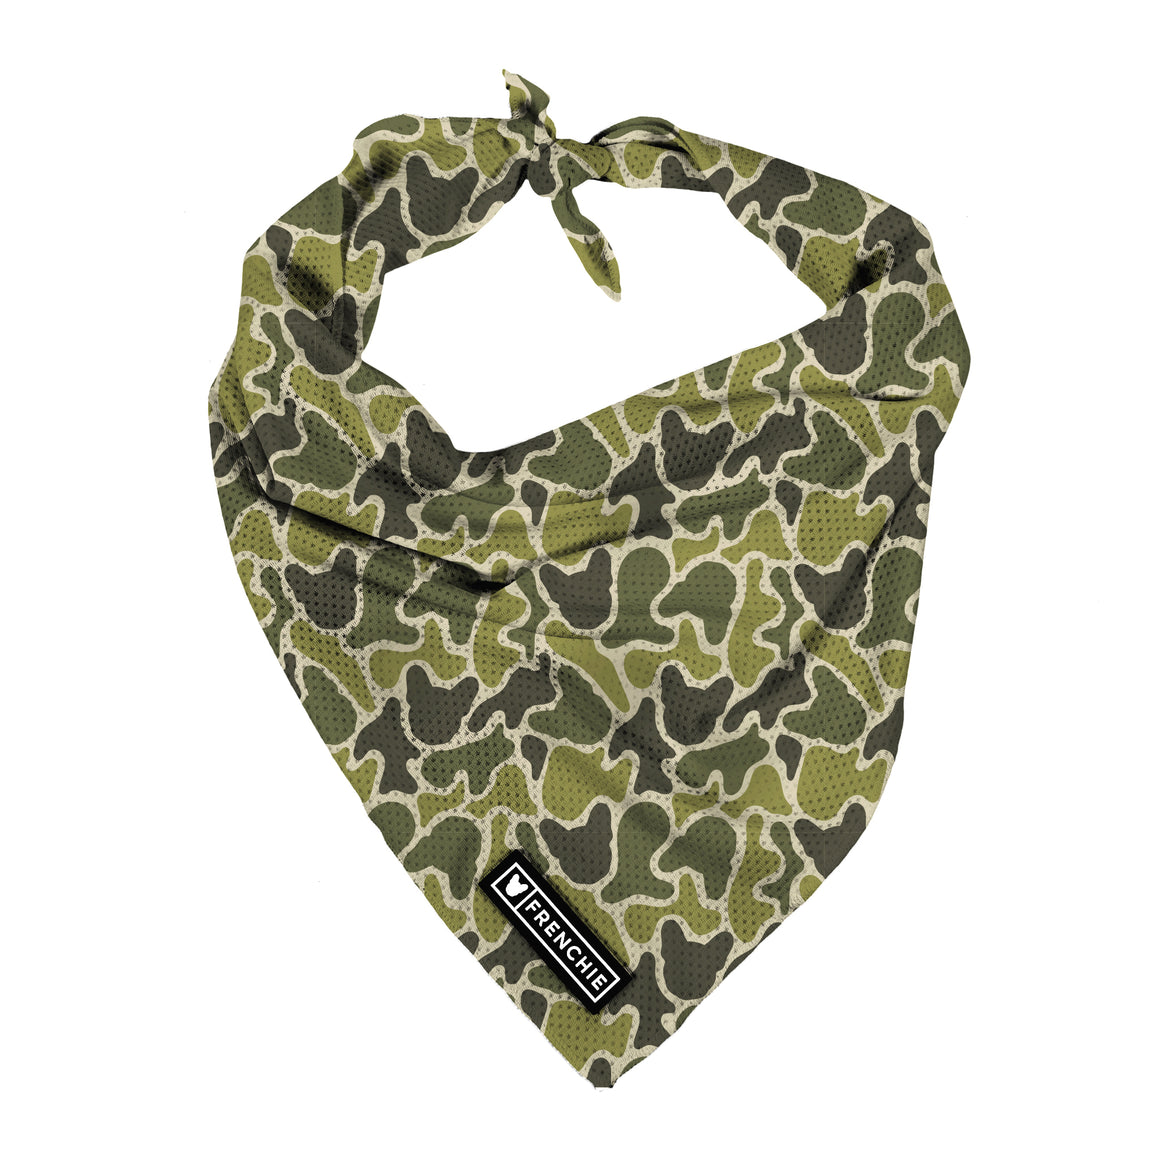 Frenchie Cooling Bandana- Green Frenchie Camo - Frenchie Bulldog - Shop Harnesses for French Bulldogs - Shop French Bulldog Harness - Harnesses for Pugs